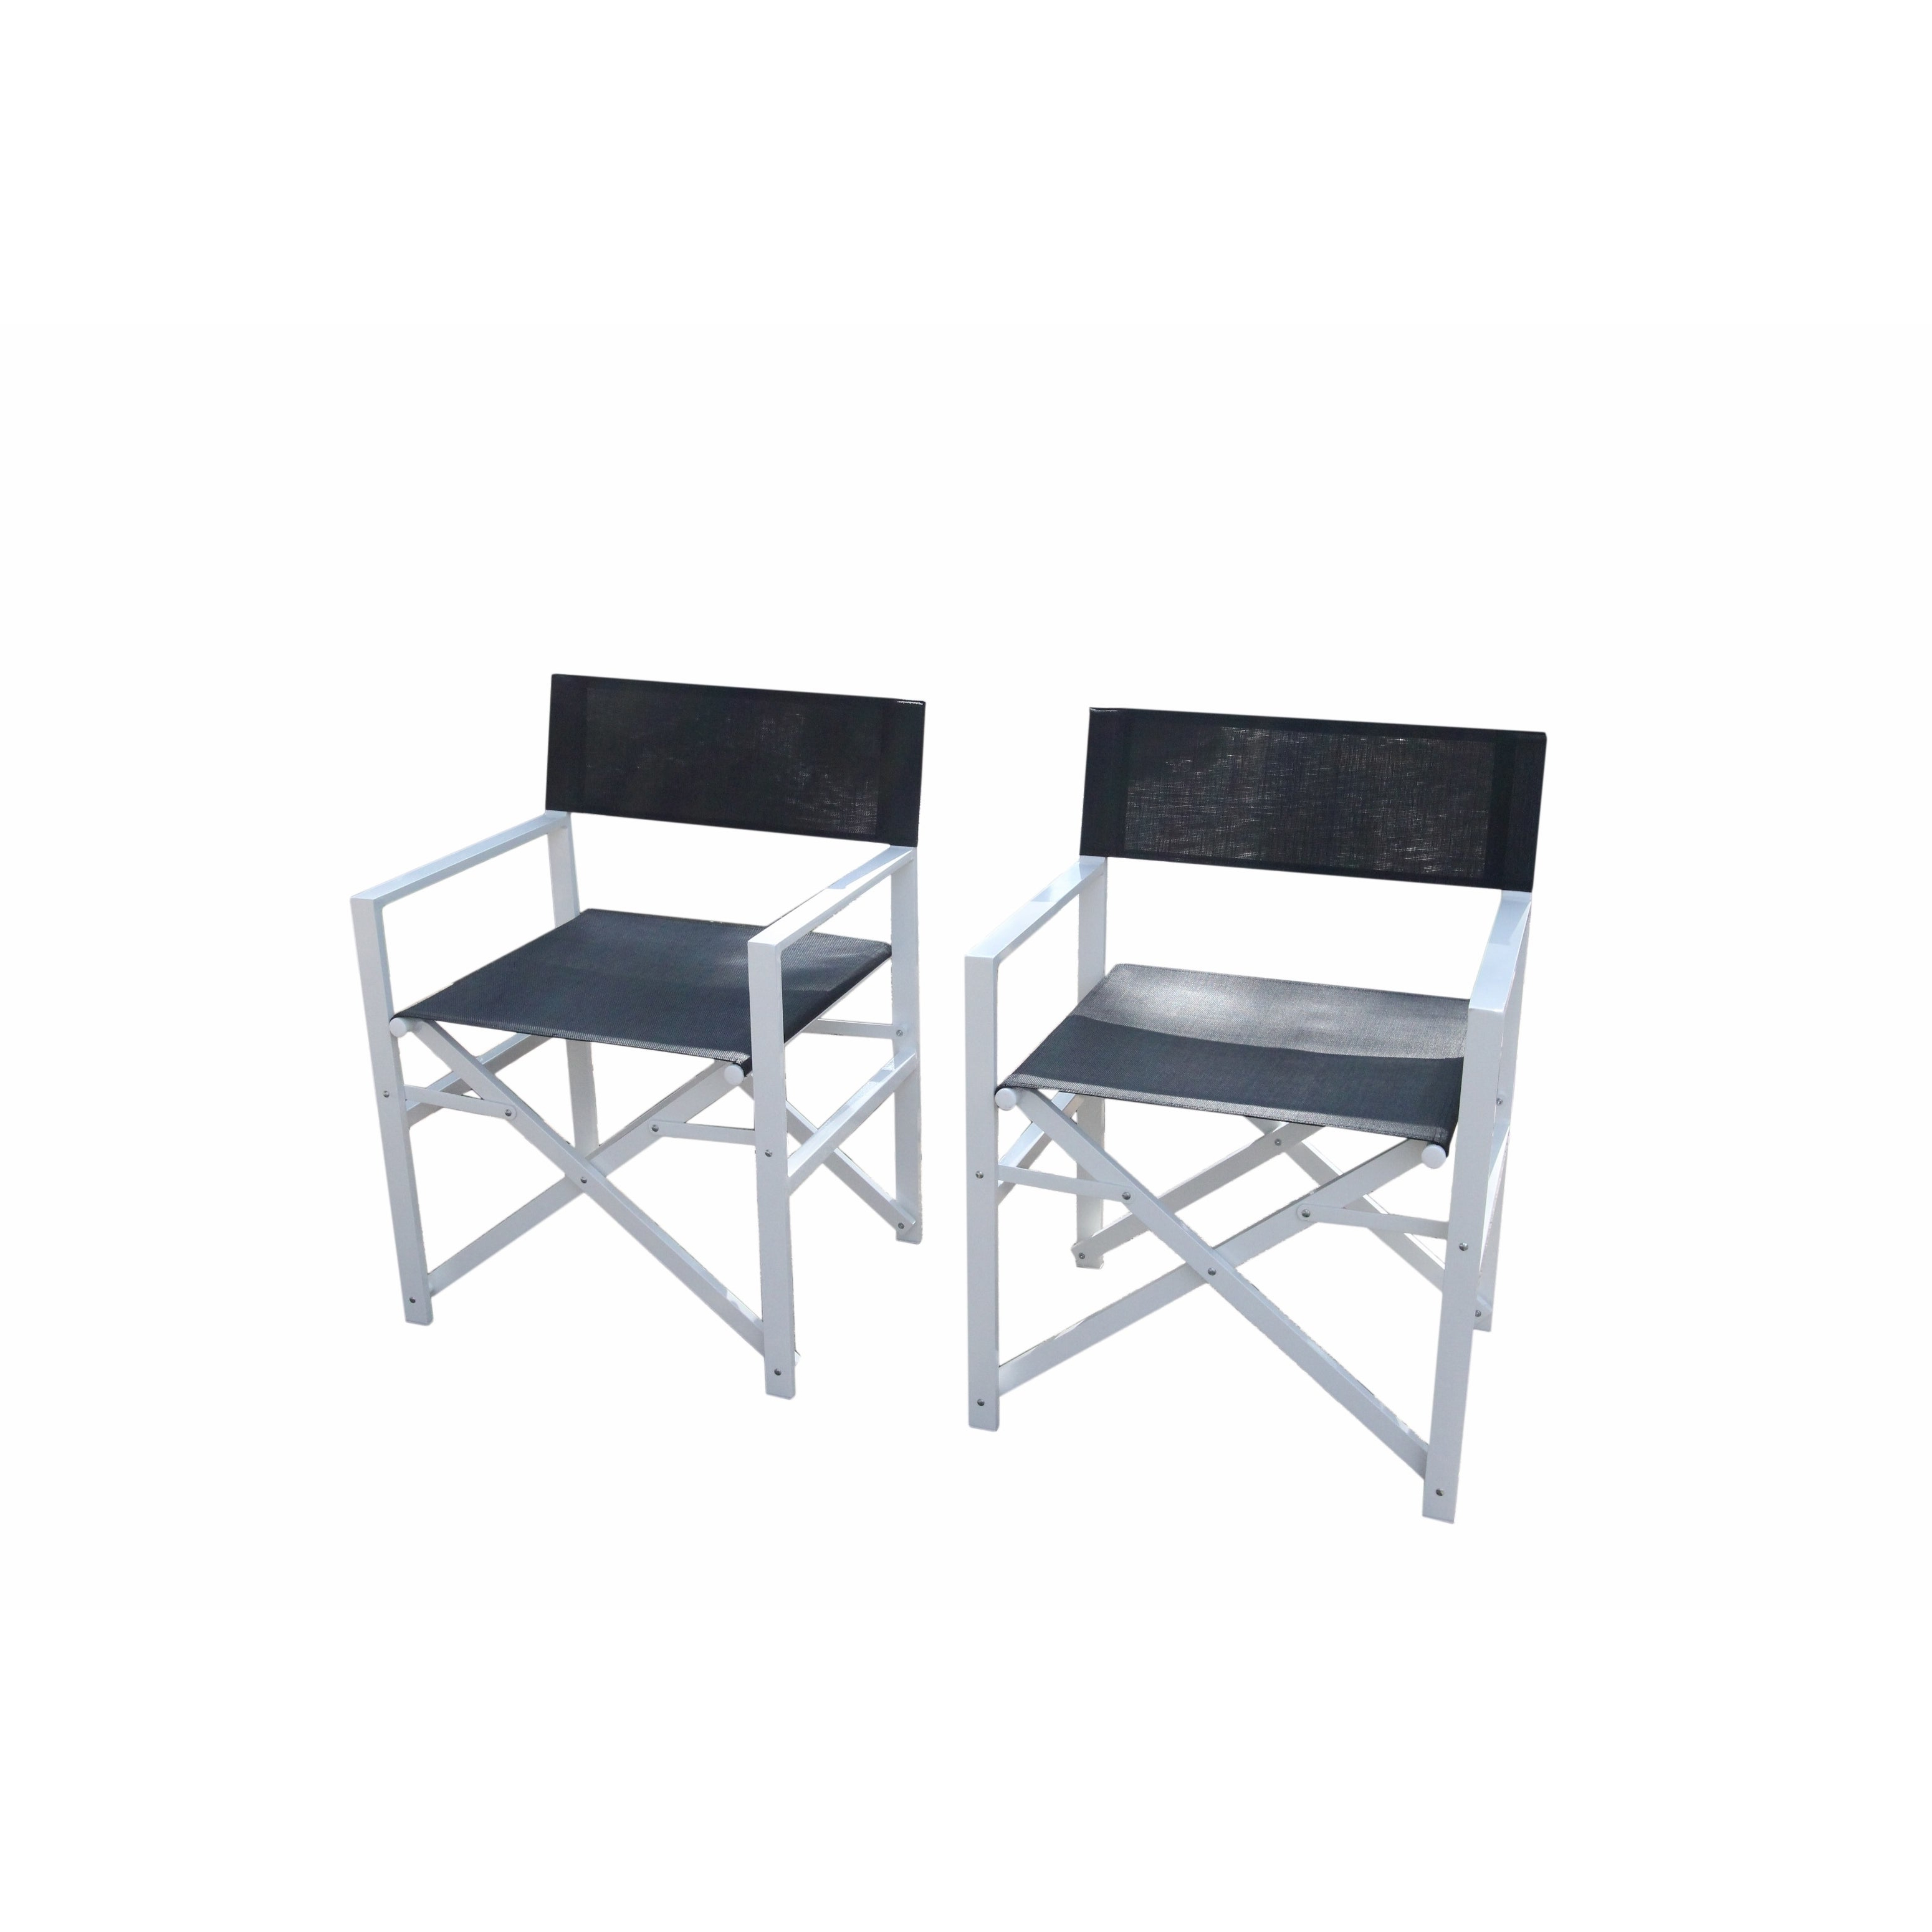 Newest Shop Del Mar White Director Chair 5 Piece Dining Set – Free Shipping For Delmar 5 Piece Dining Sets (View 14 of 25)